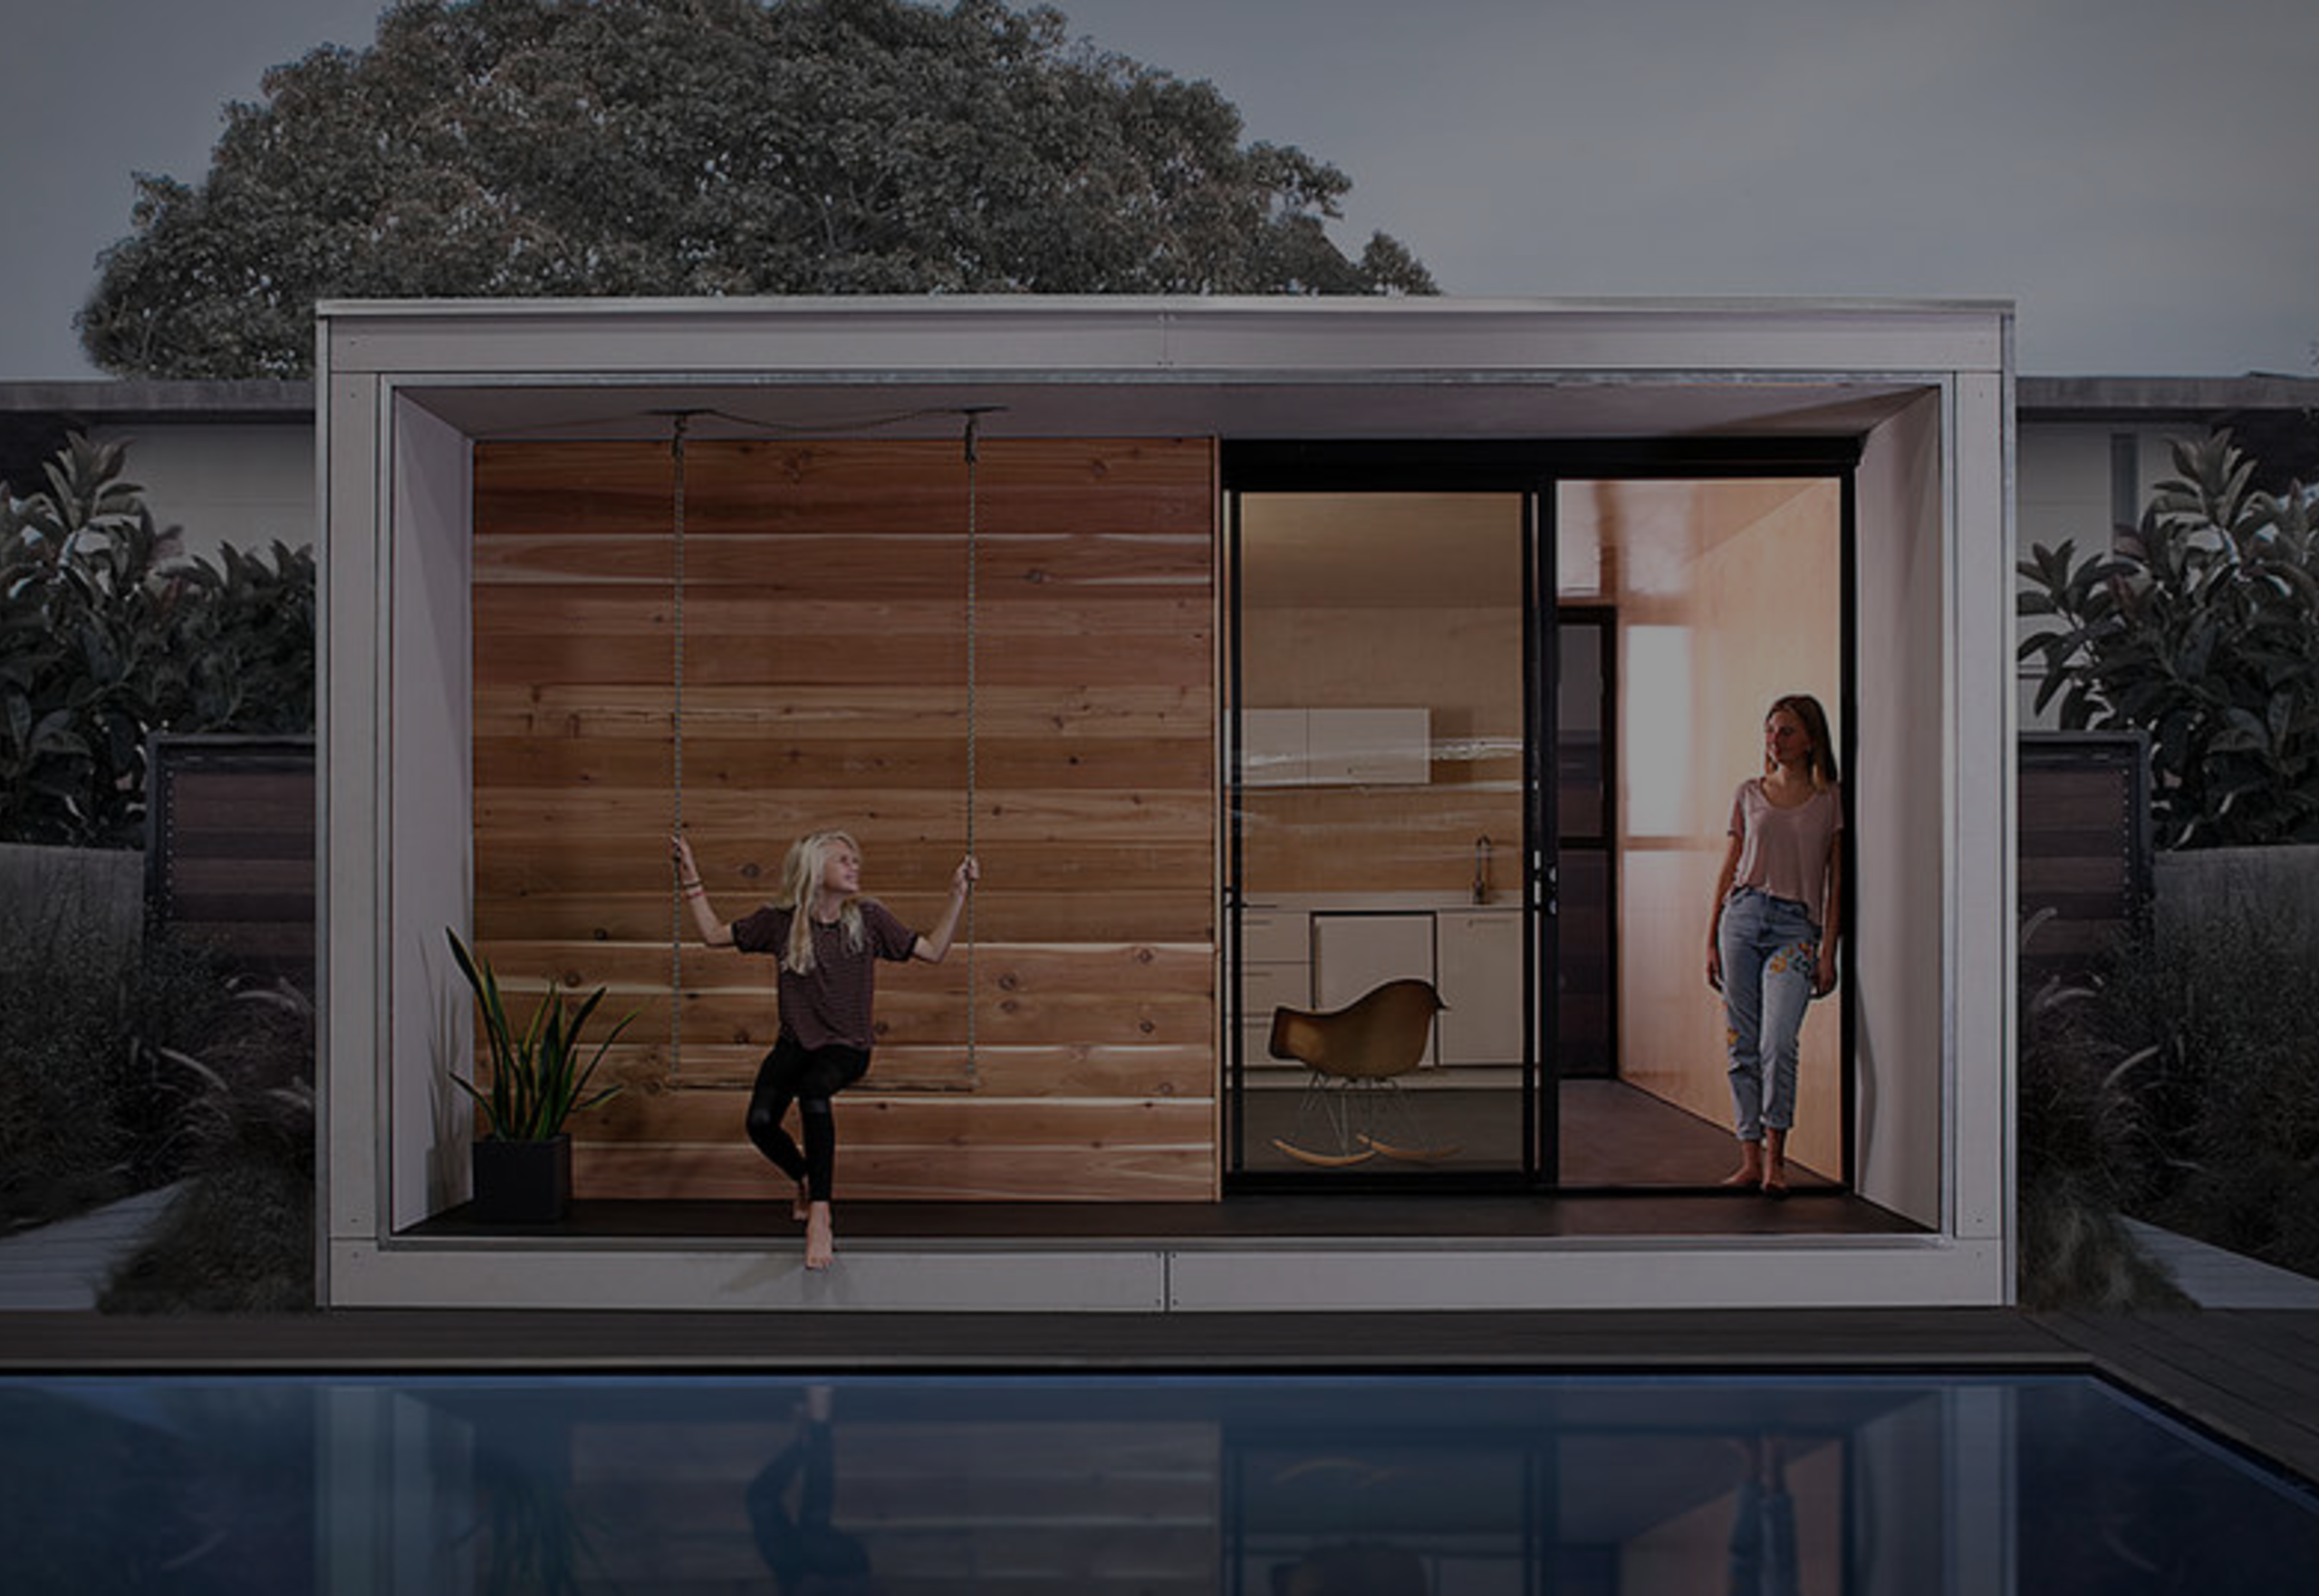 A Guide To Accessory Dwelling Units in Sonoma County